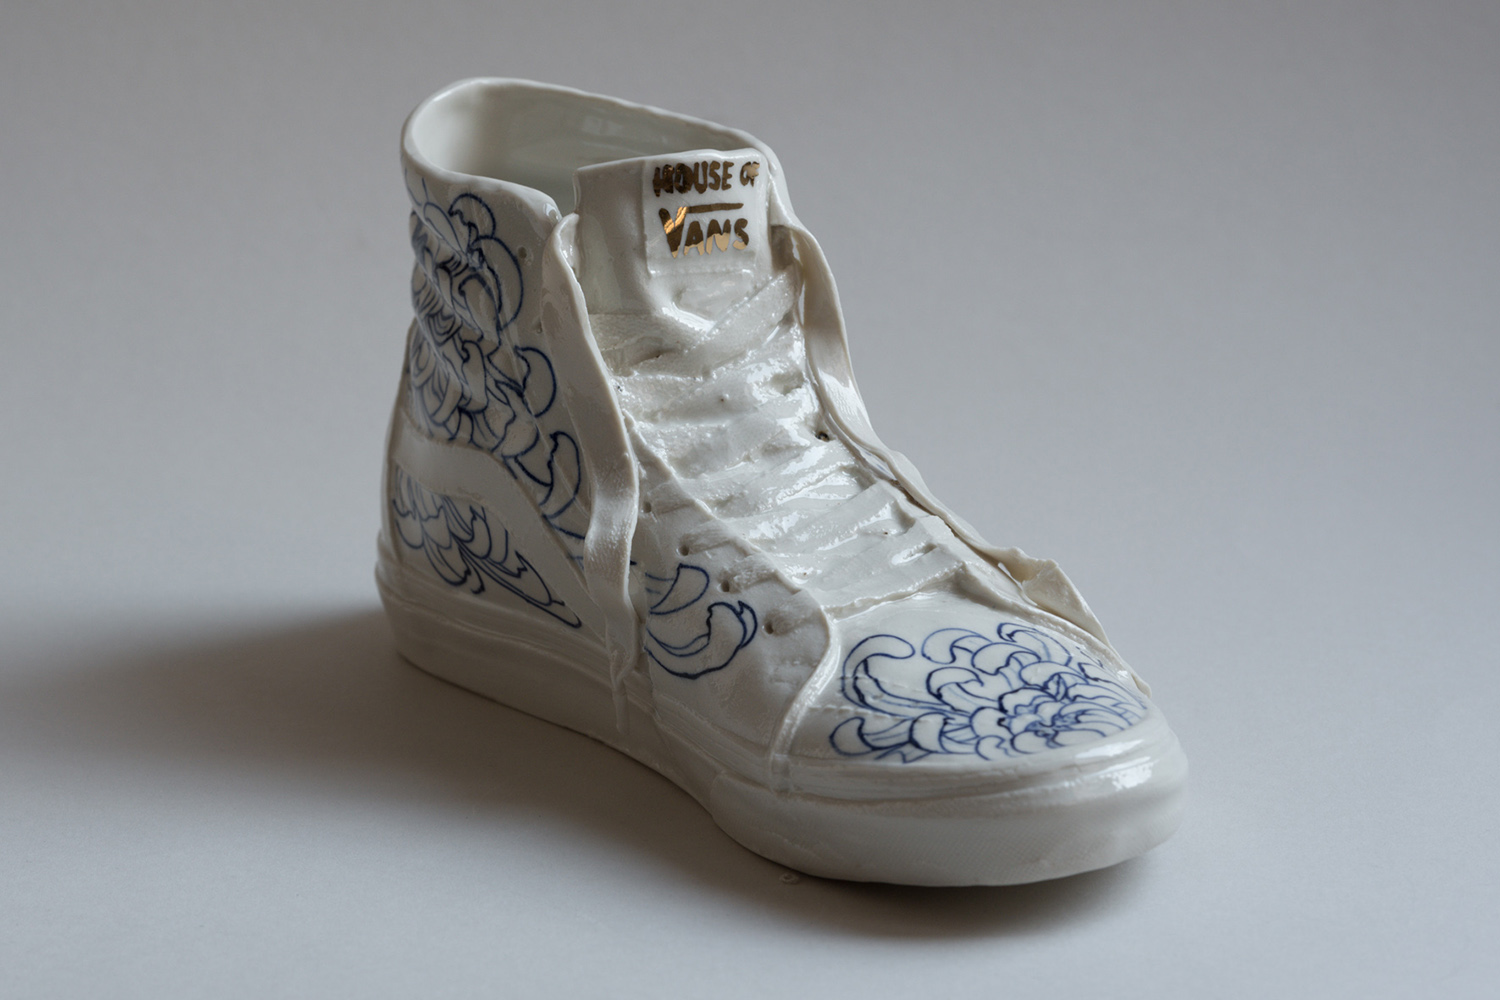 Vans white blue porcelain skate shoes handmade off the wall Hous of Vans 2019 Berlin art Marta ANtikapratika.jpg